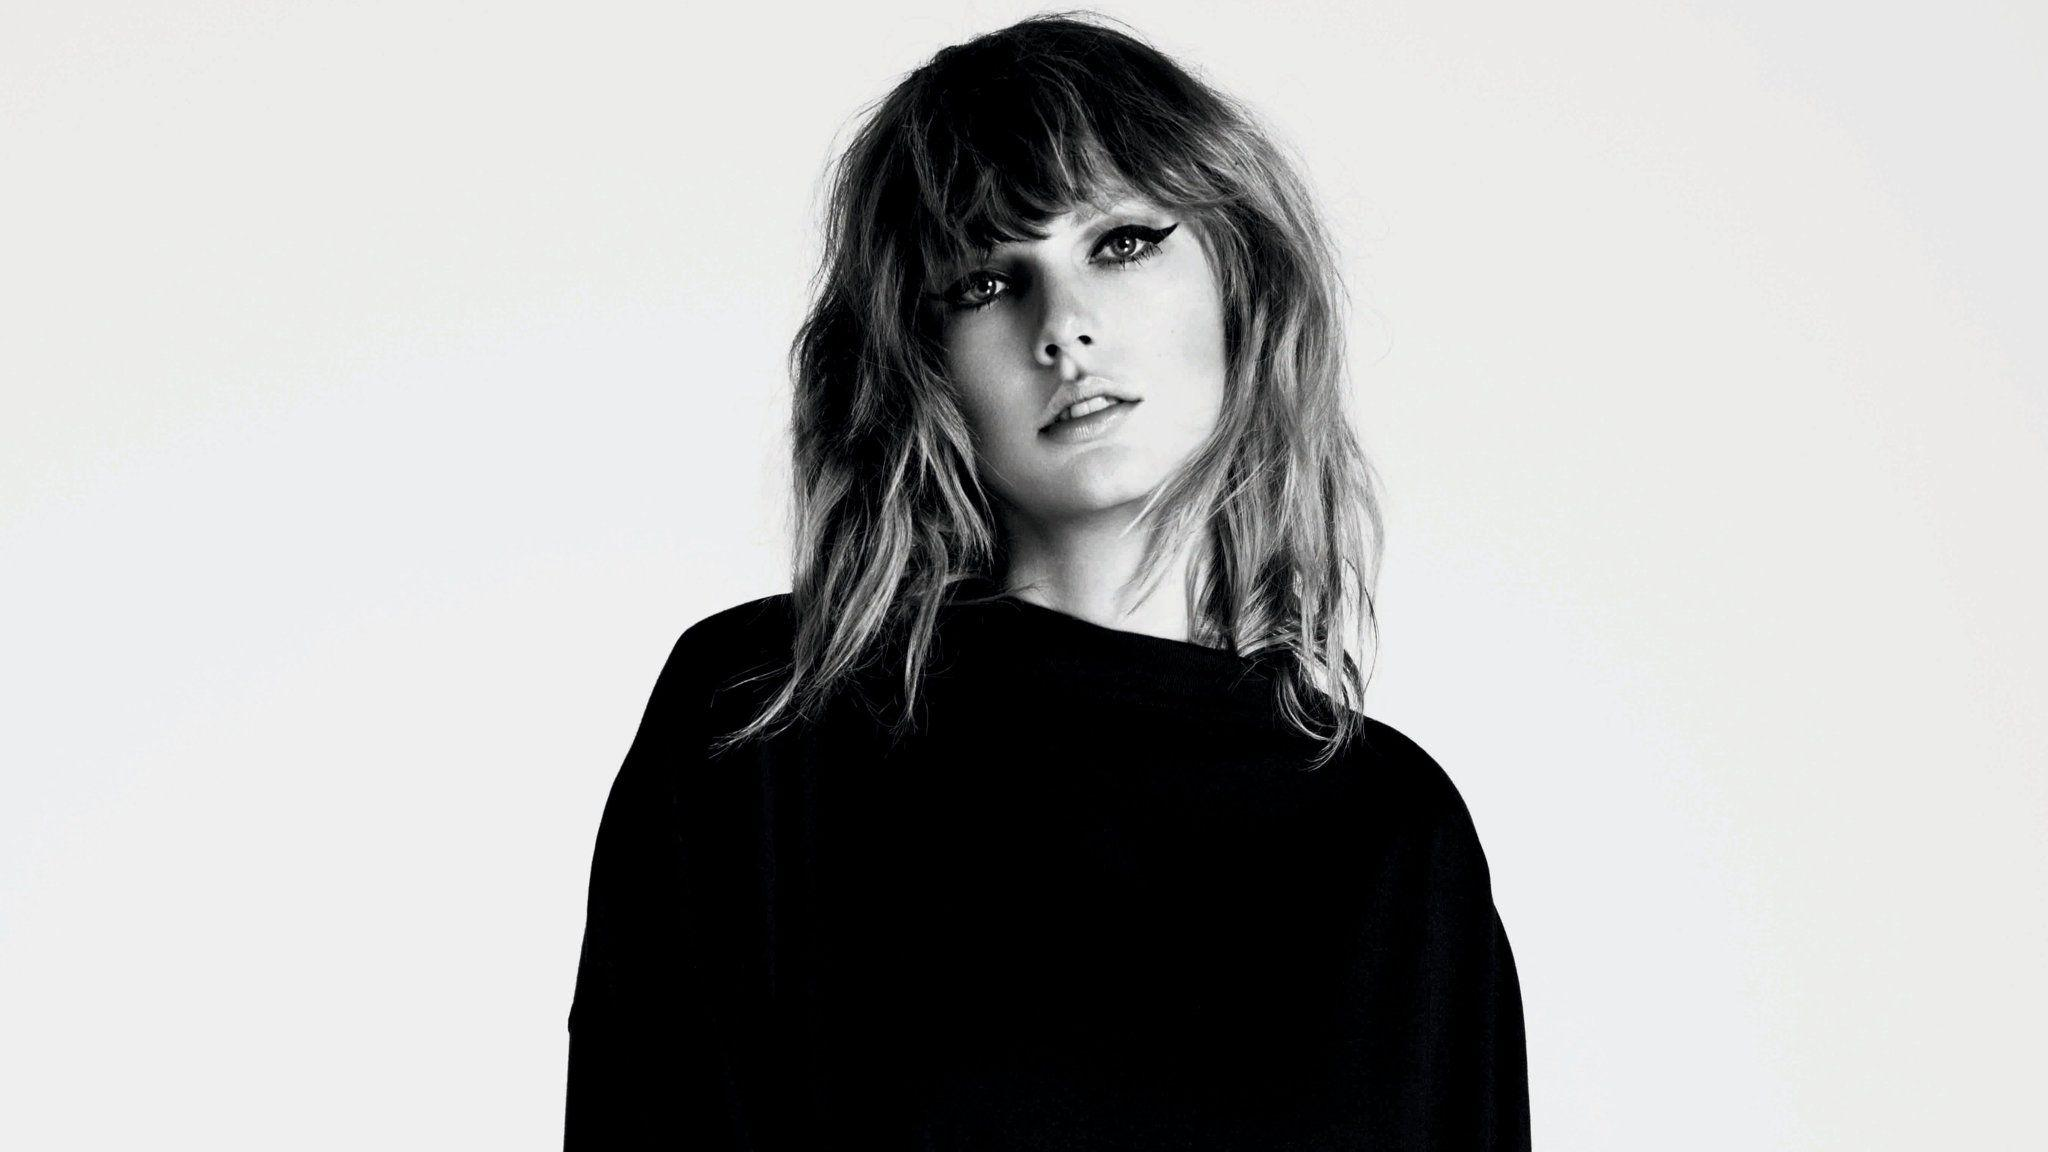 Taylor Swift 2019 Wallpapers Wallpaper Cave